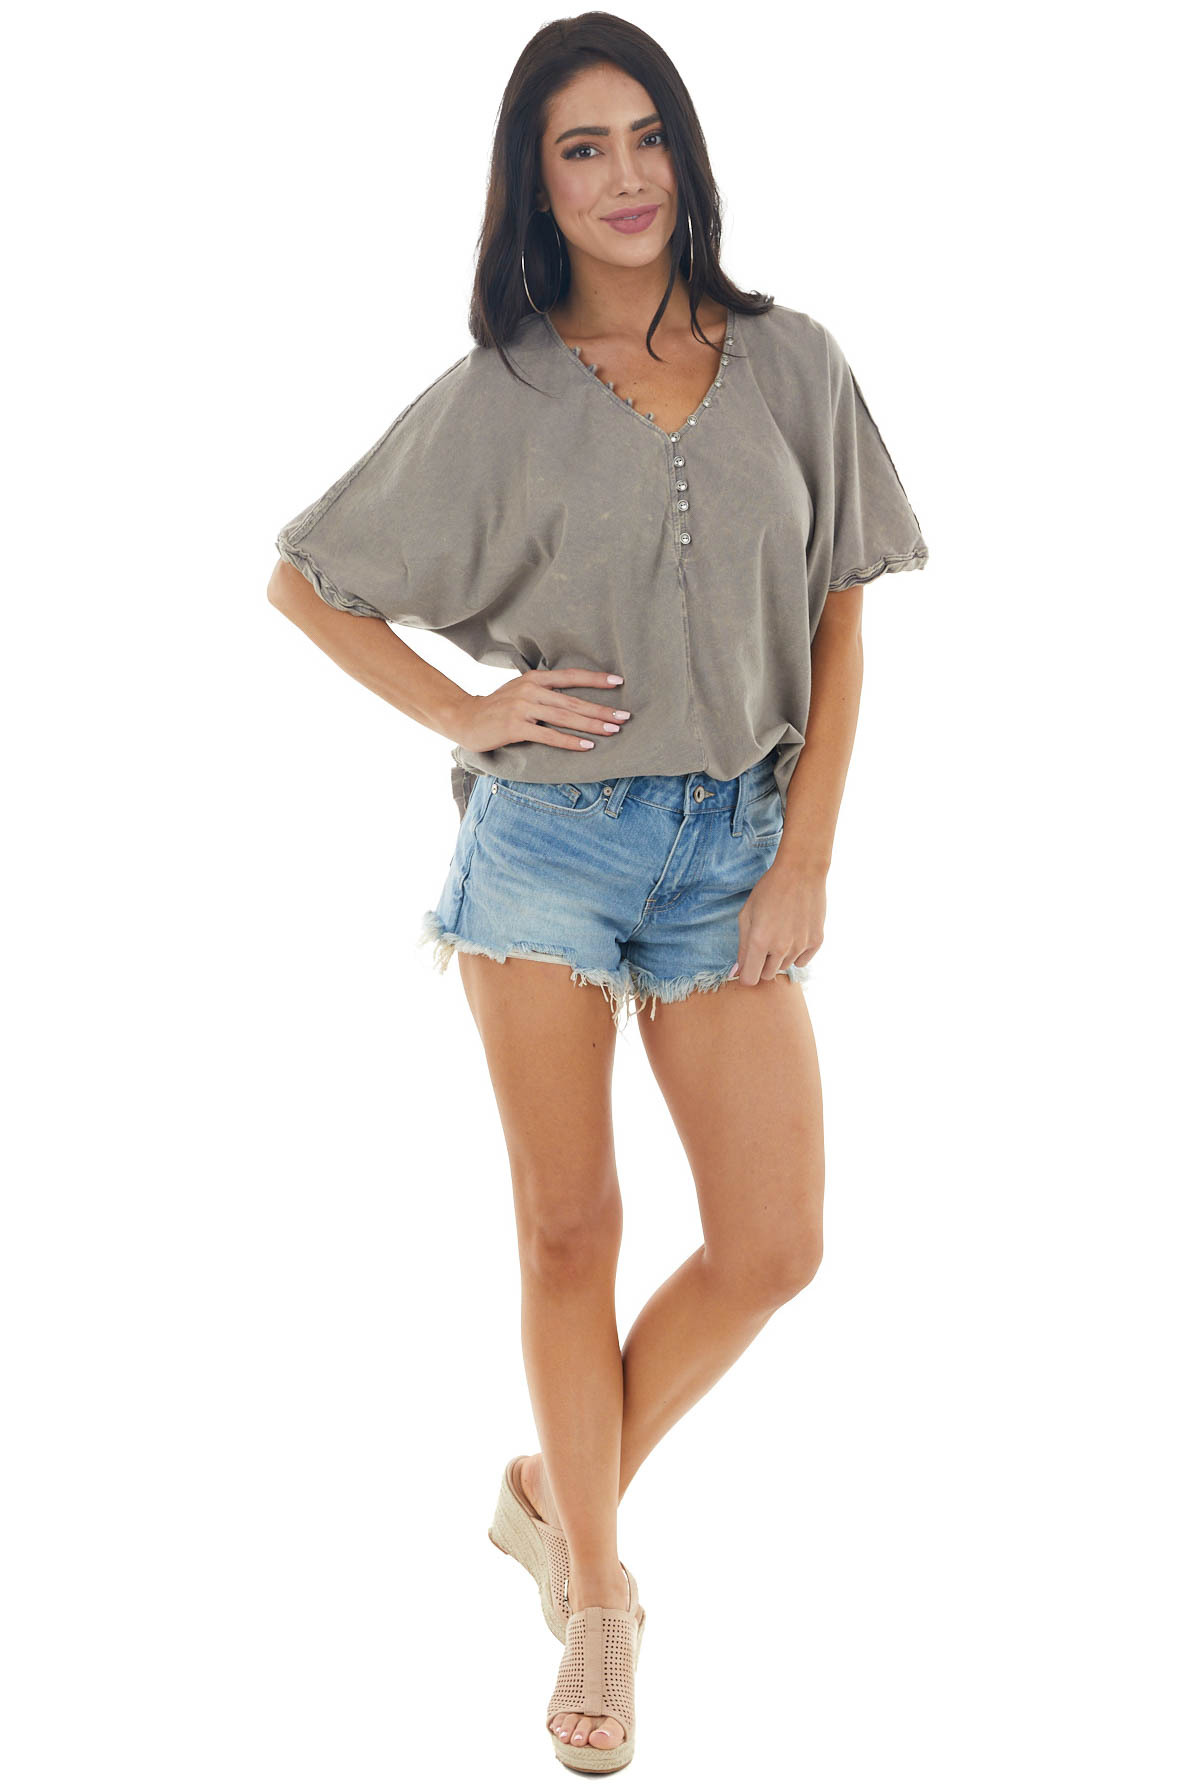 Taupe Mineral Wash Knit Top with Button Up V Neckline